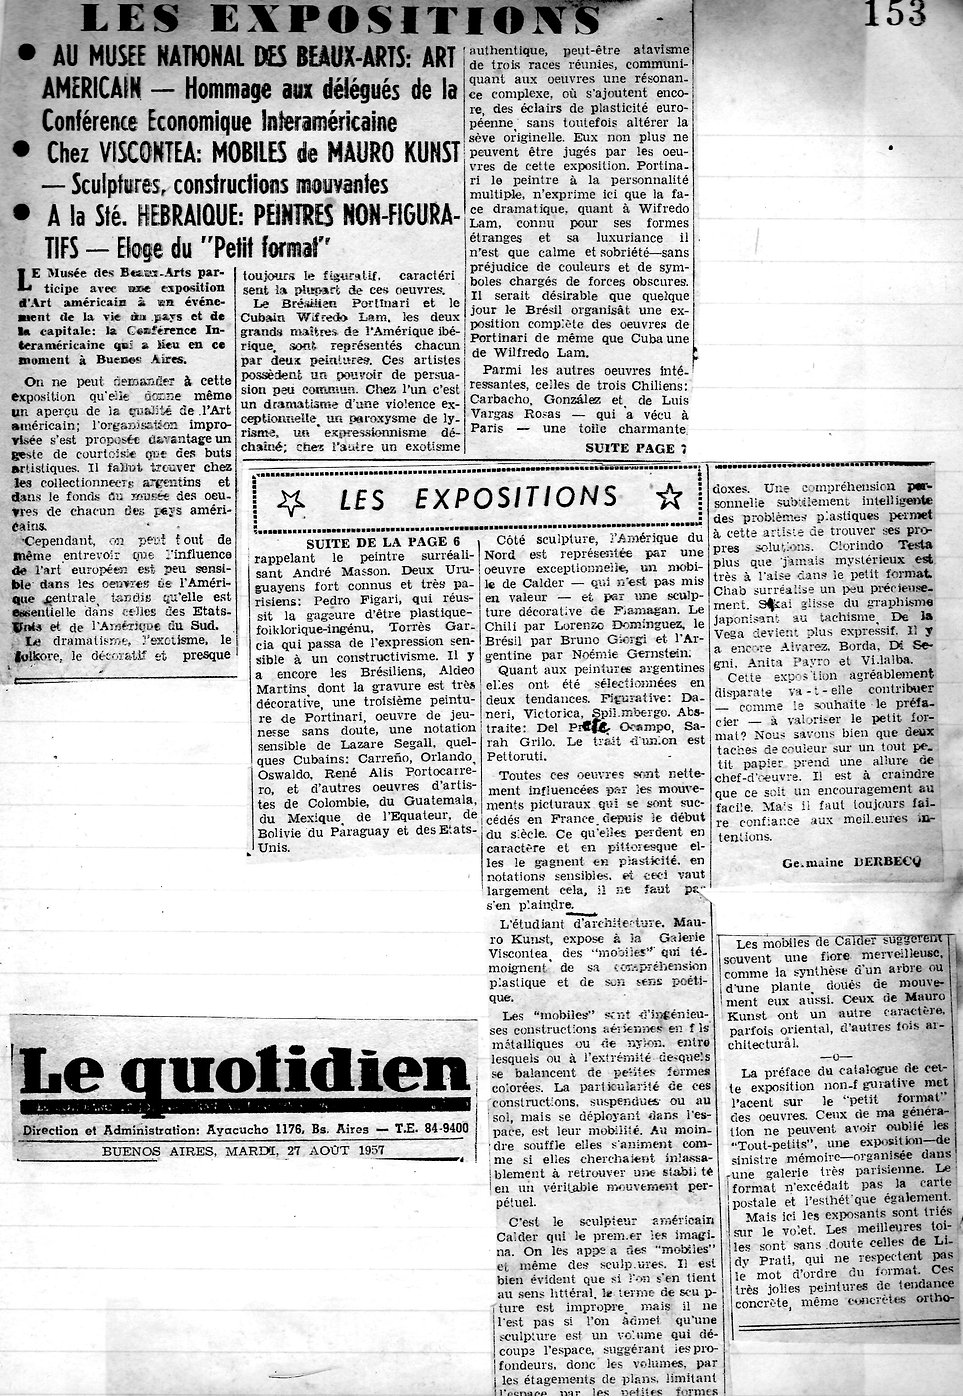 Le Quotidien2 - Au musee national.jpg